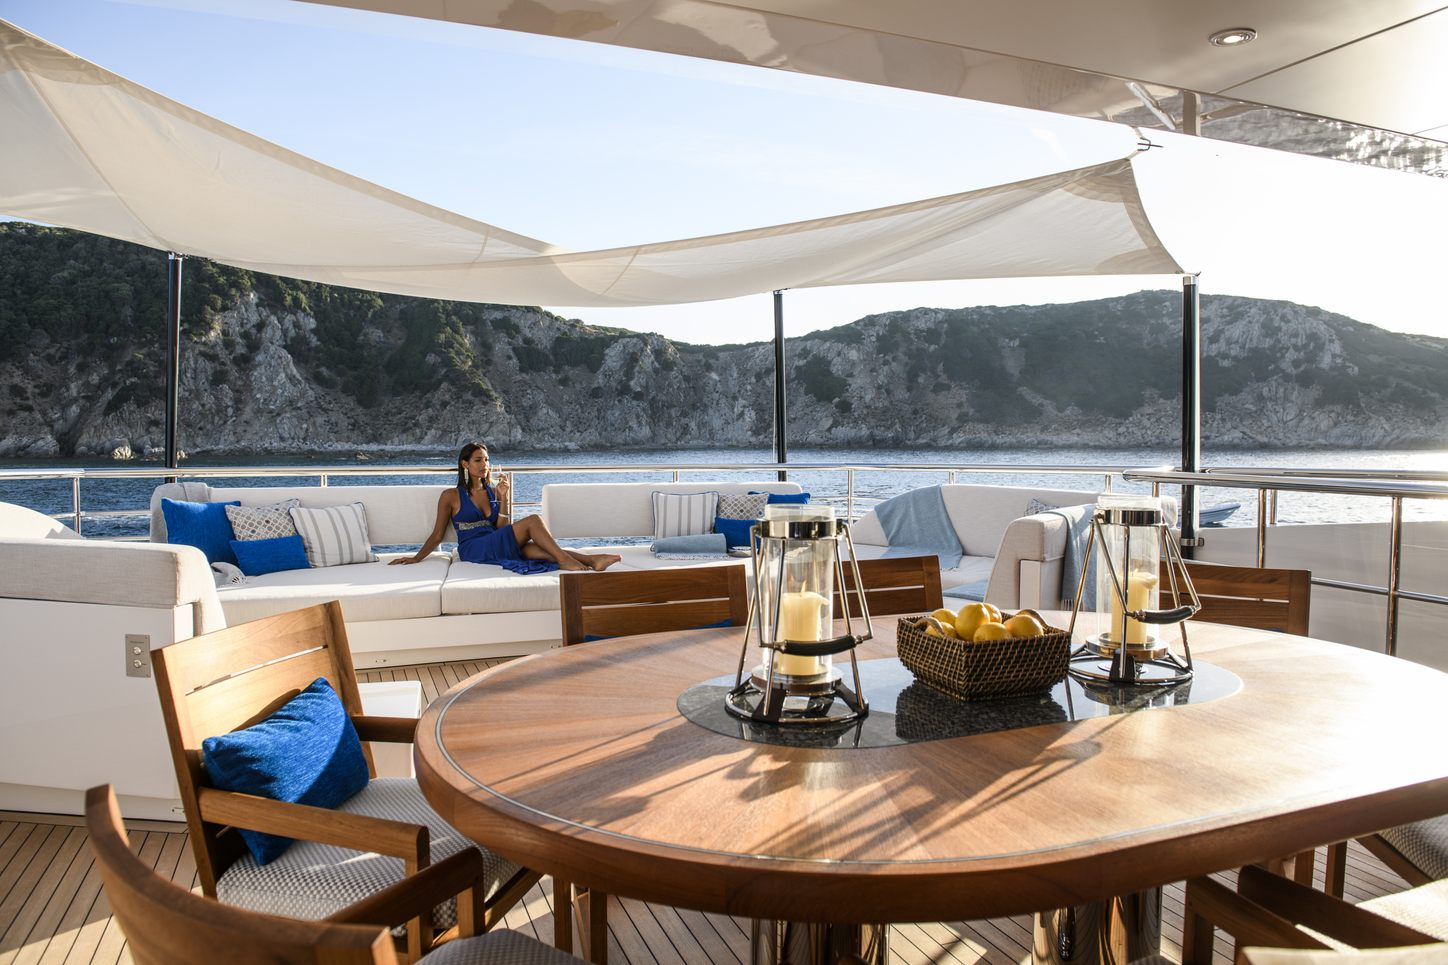 Charter guest enjoys aft deck of luxury yacht IRISHA, with bowl of lemons on table